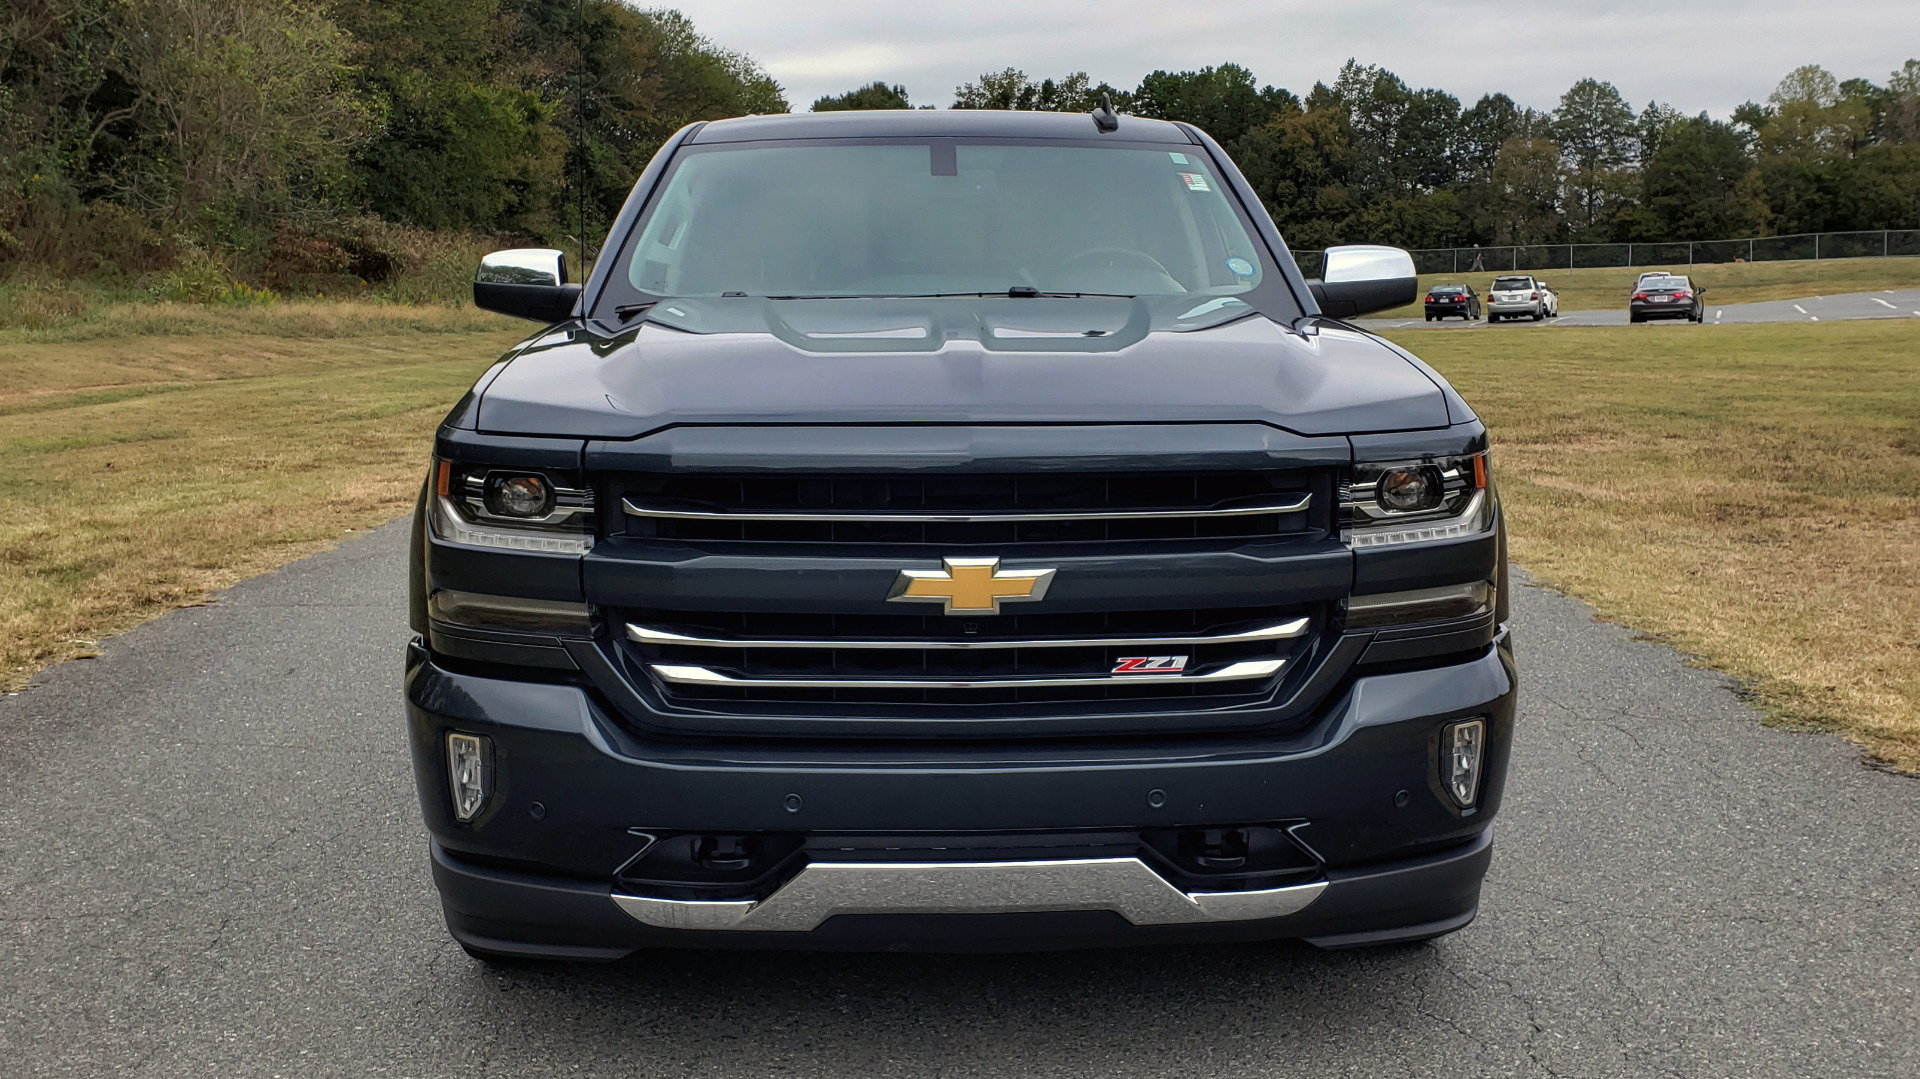 Used 2017 Chevrolet SILVERADO 1500 LTZ 4WD / NAV / BOSE / LEATHER / CAMERA / LOADED for sale Sold at Formula Imports in Charlotte NC 28227 21